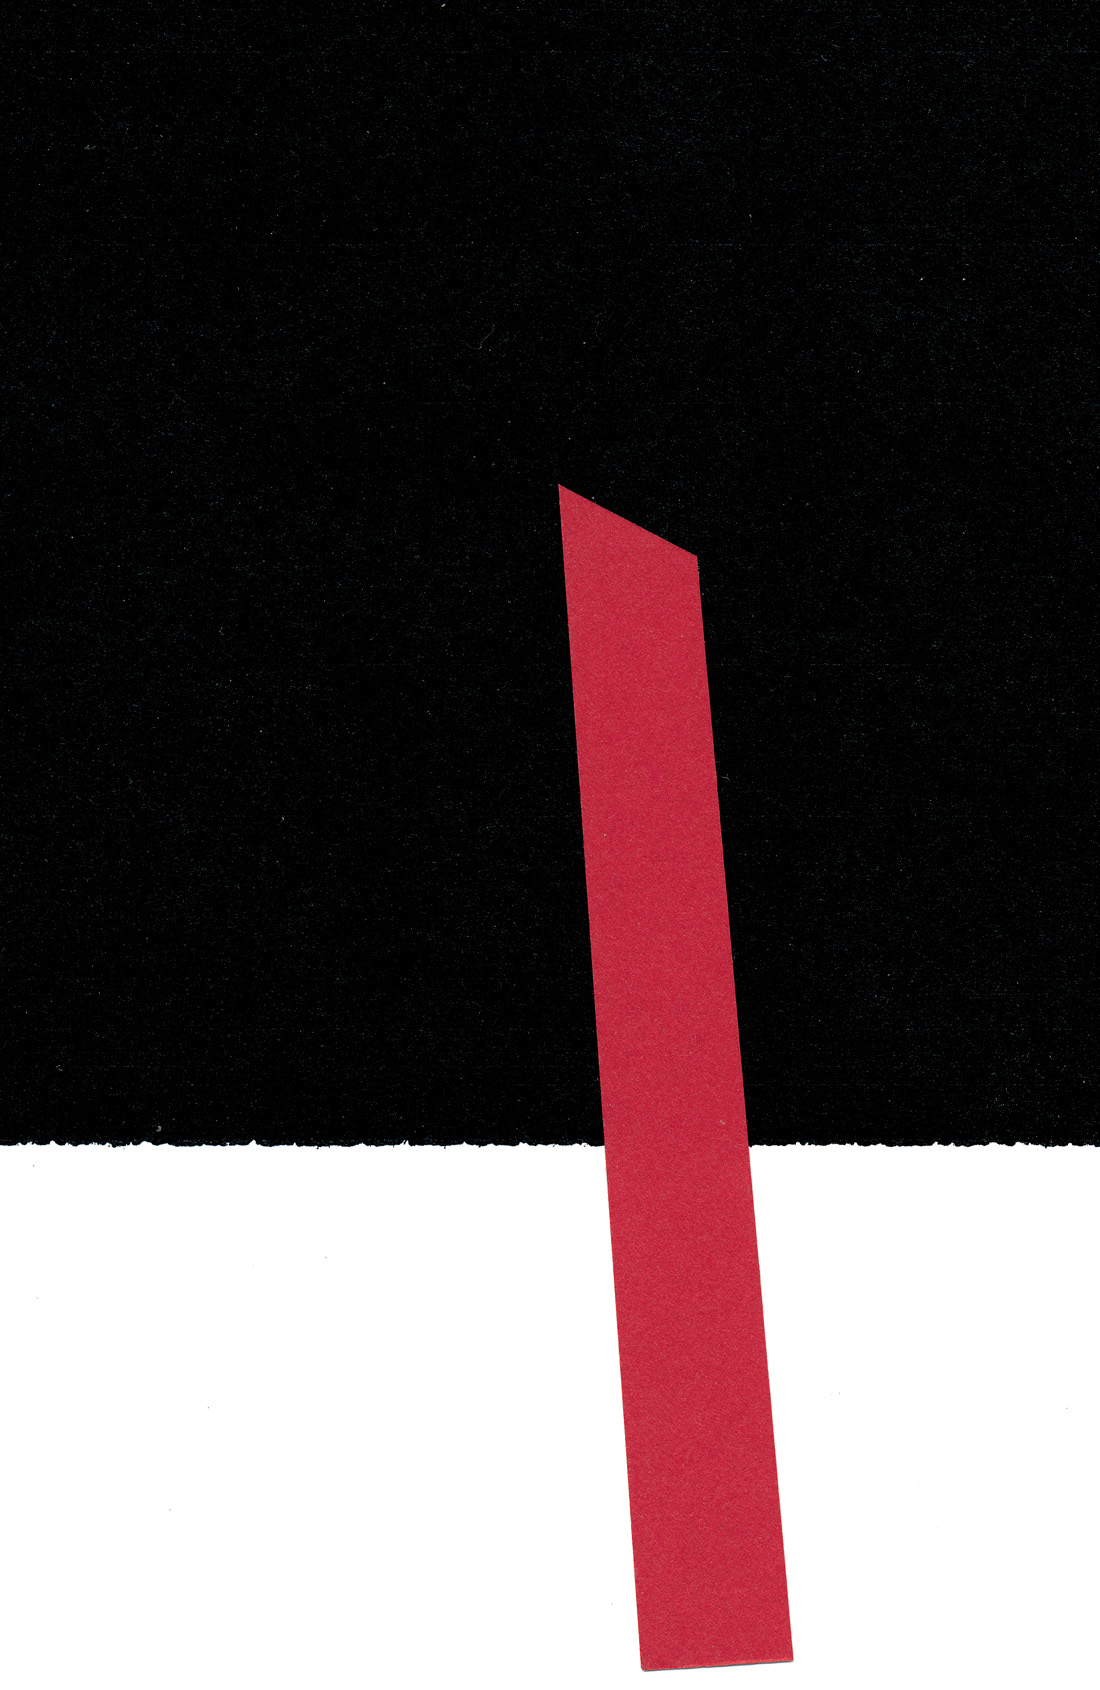 Turm, cut paper collage, Mike Tedder